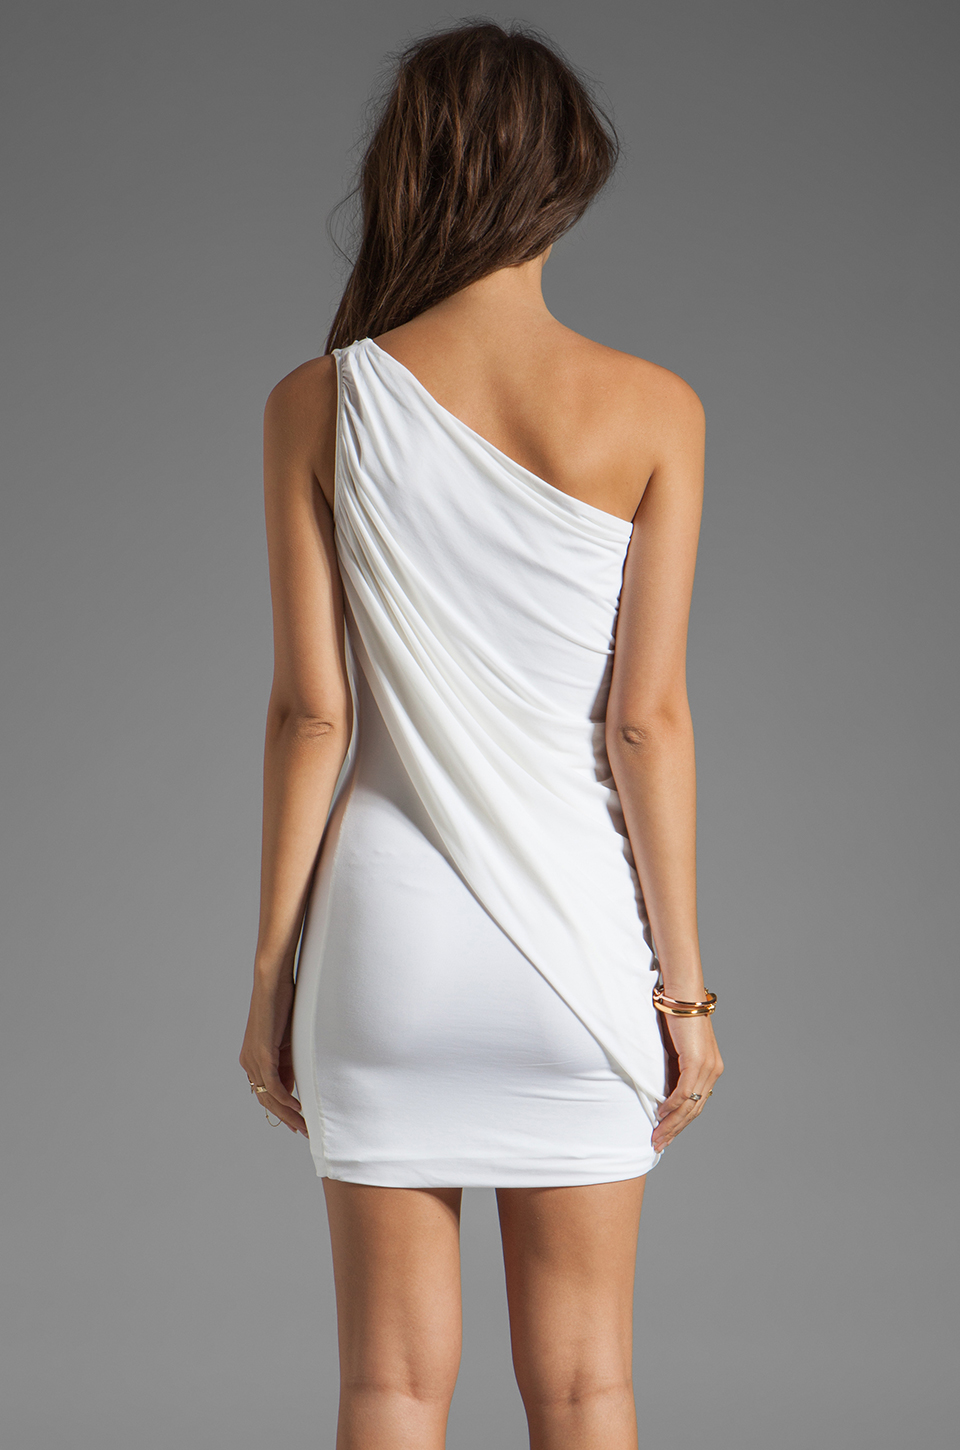 BCBGMAXAZRIA One Shoulder Mini Dress in White